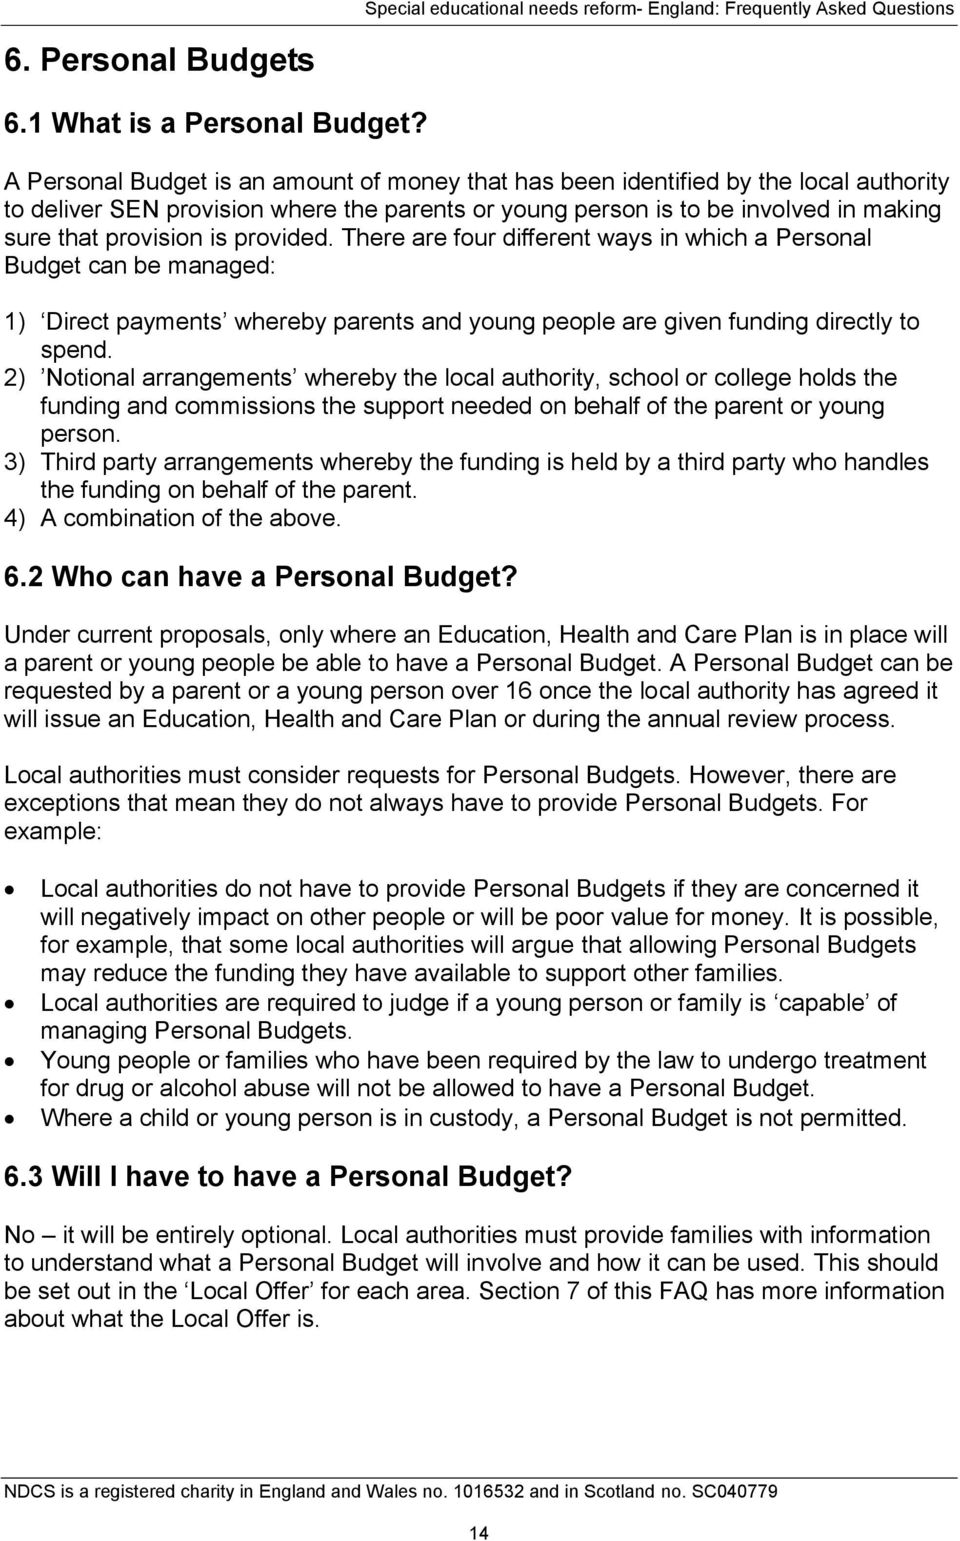 provided. There are four different ways in which a Personal Budget can be managed: 1) Direct payments whereby parents and young people are given funding directly to spend.